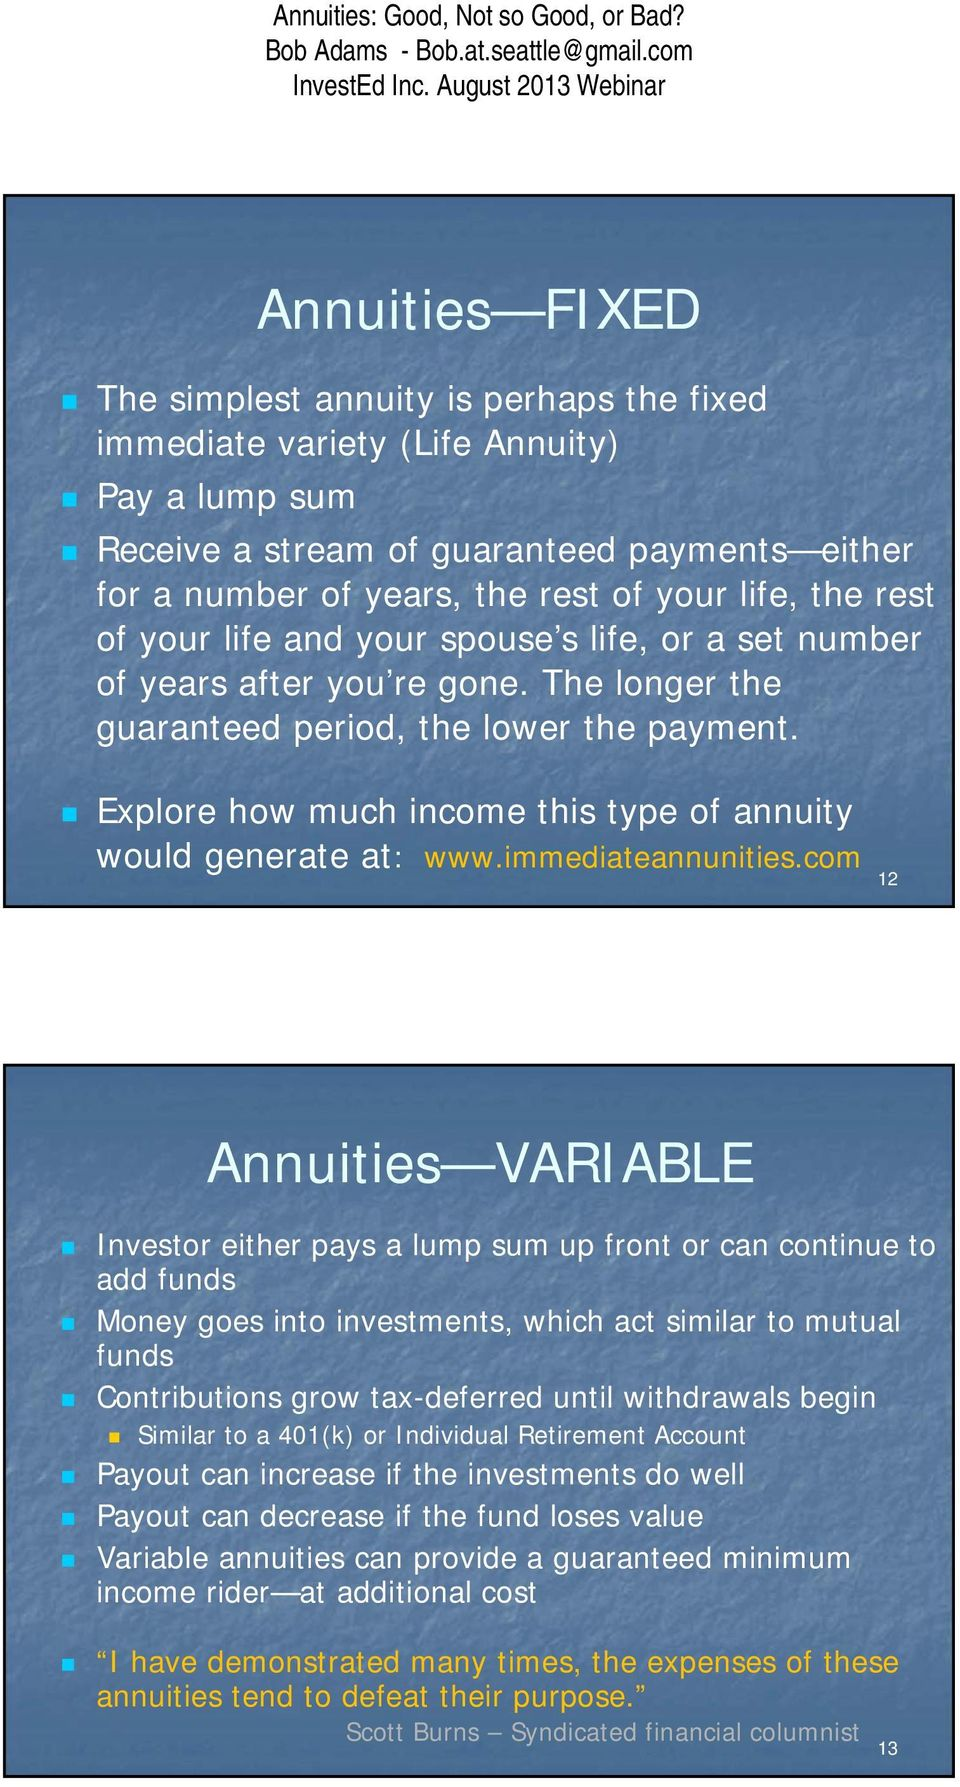 Explore how much income this type of annuity would generate at: www.immediateannunities.